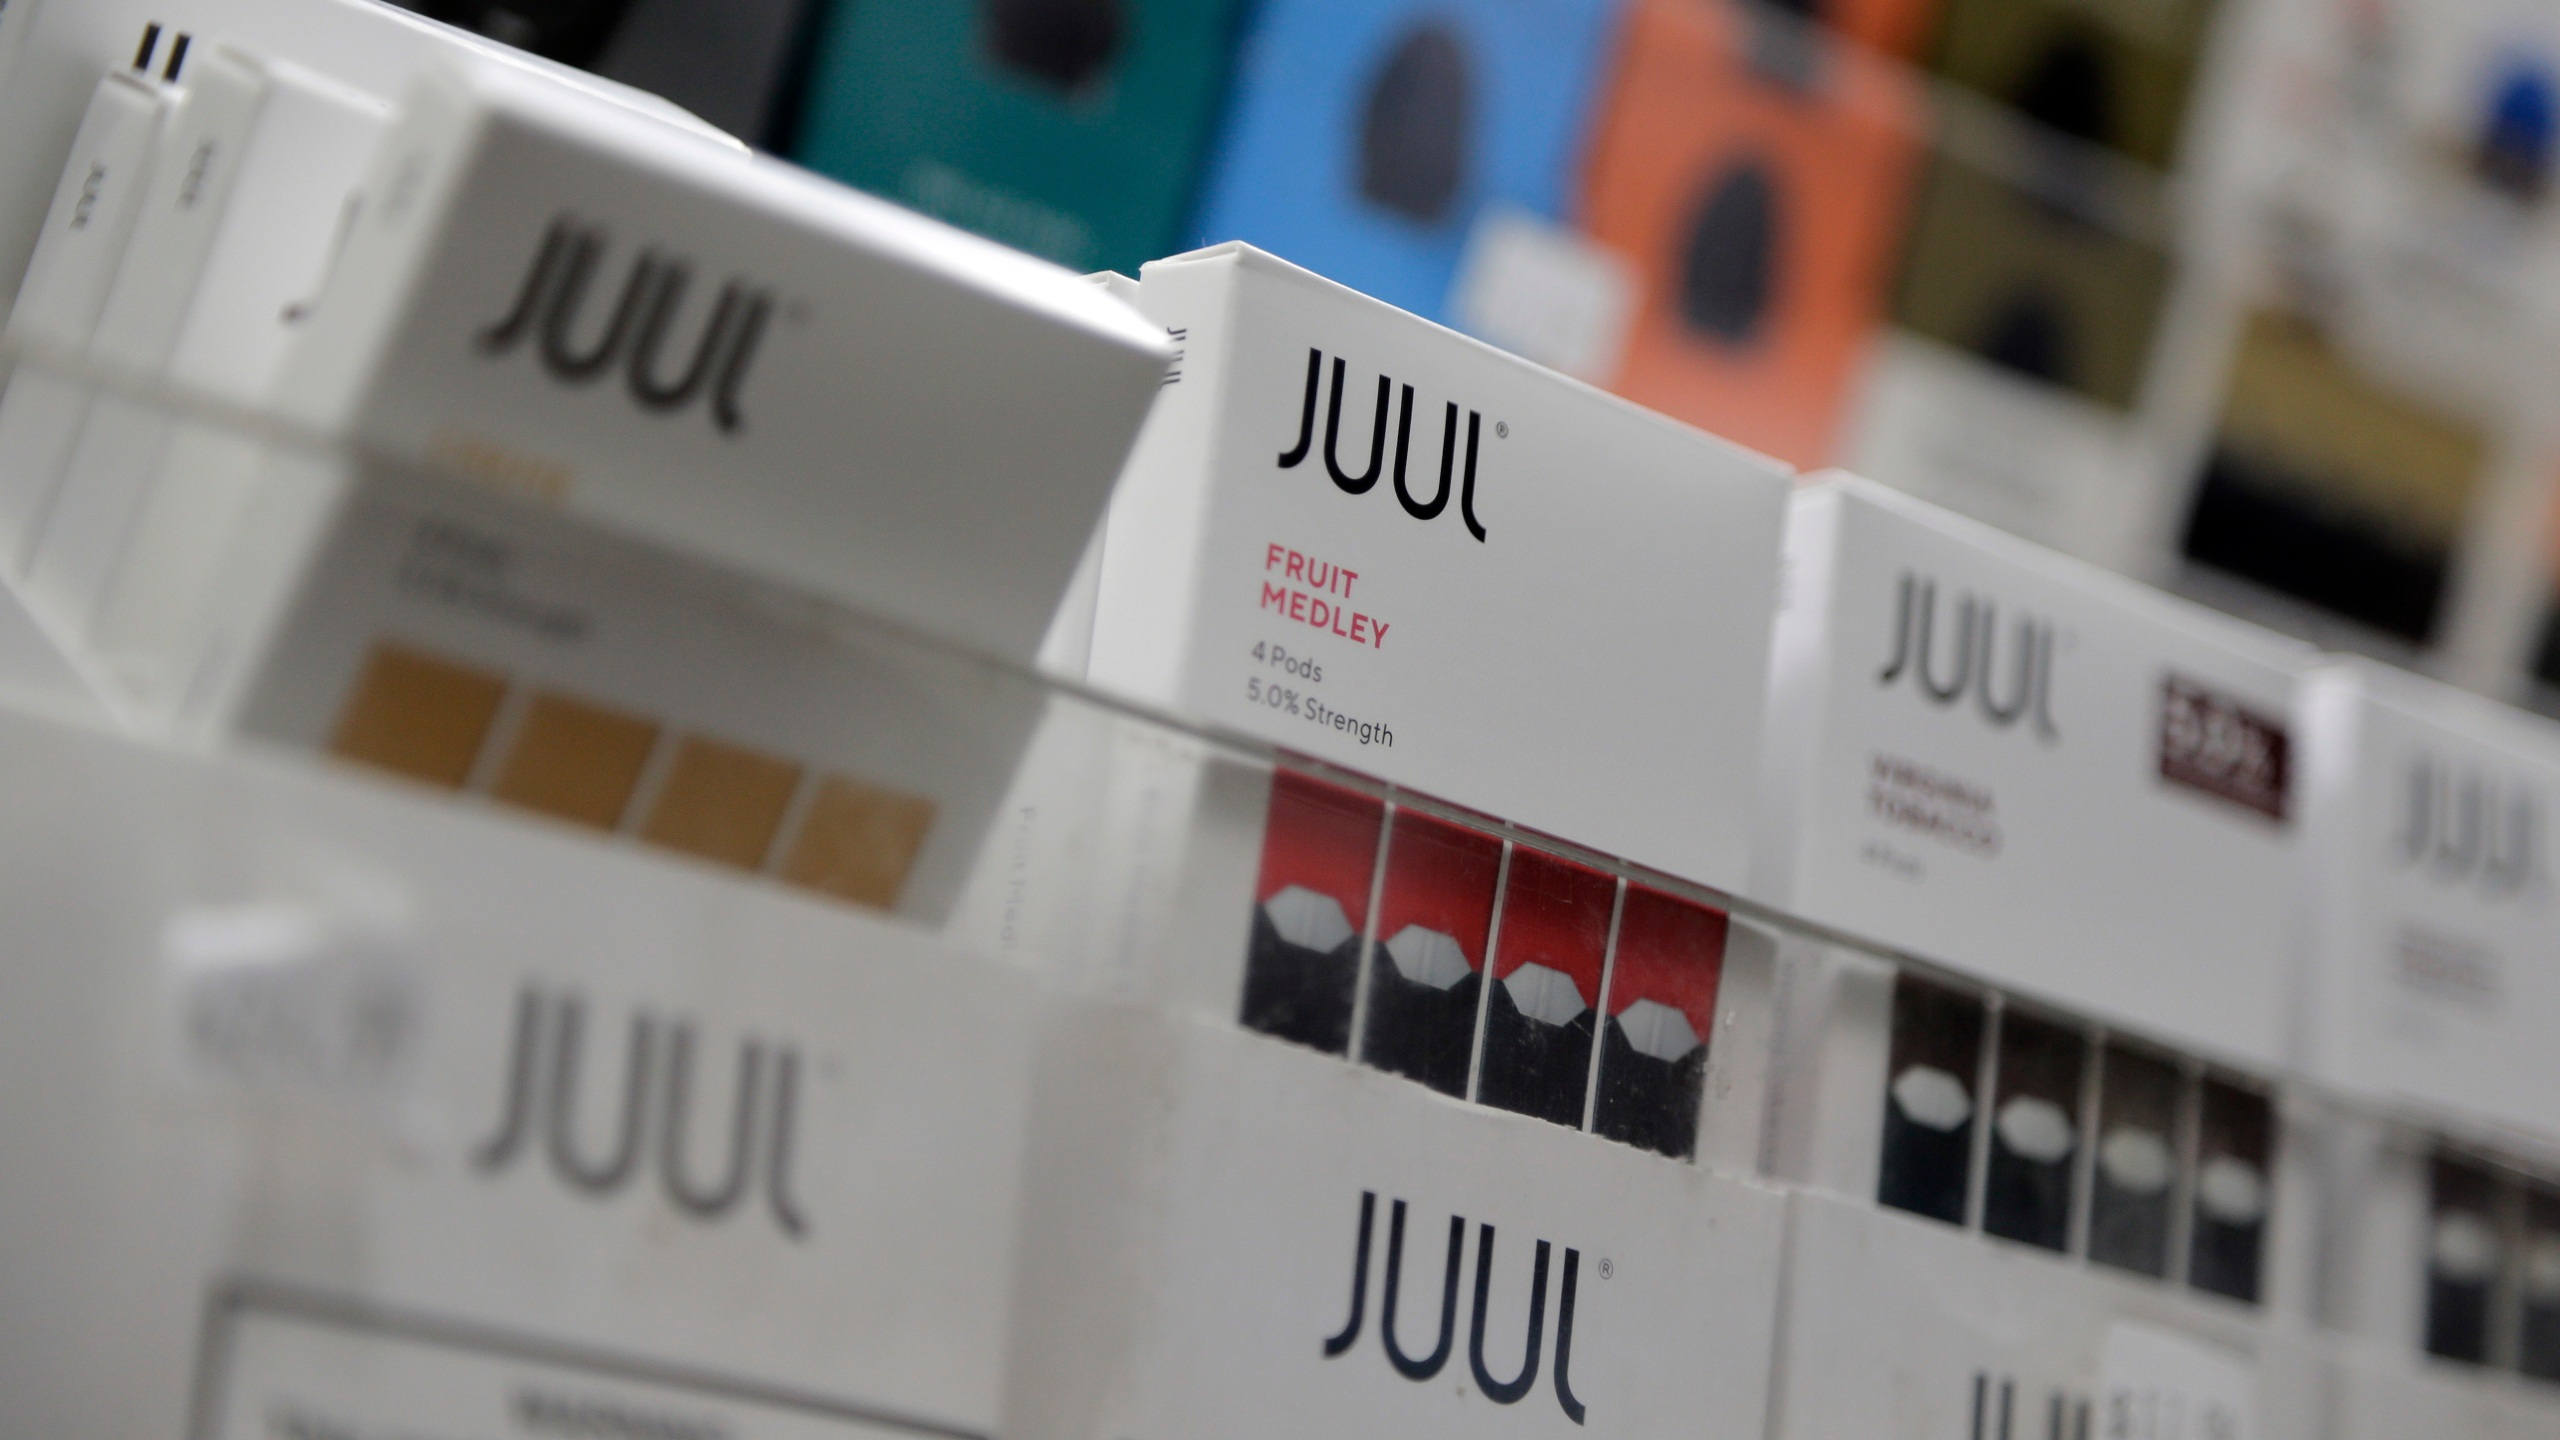 Juul_Unproven_Ads_67021-159532.jpg92987965